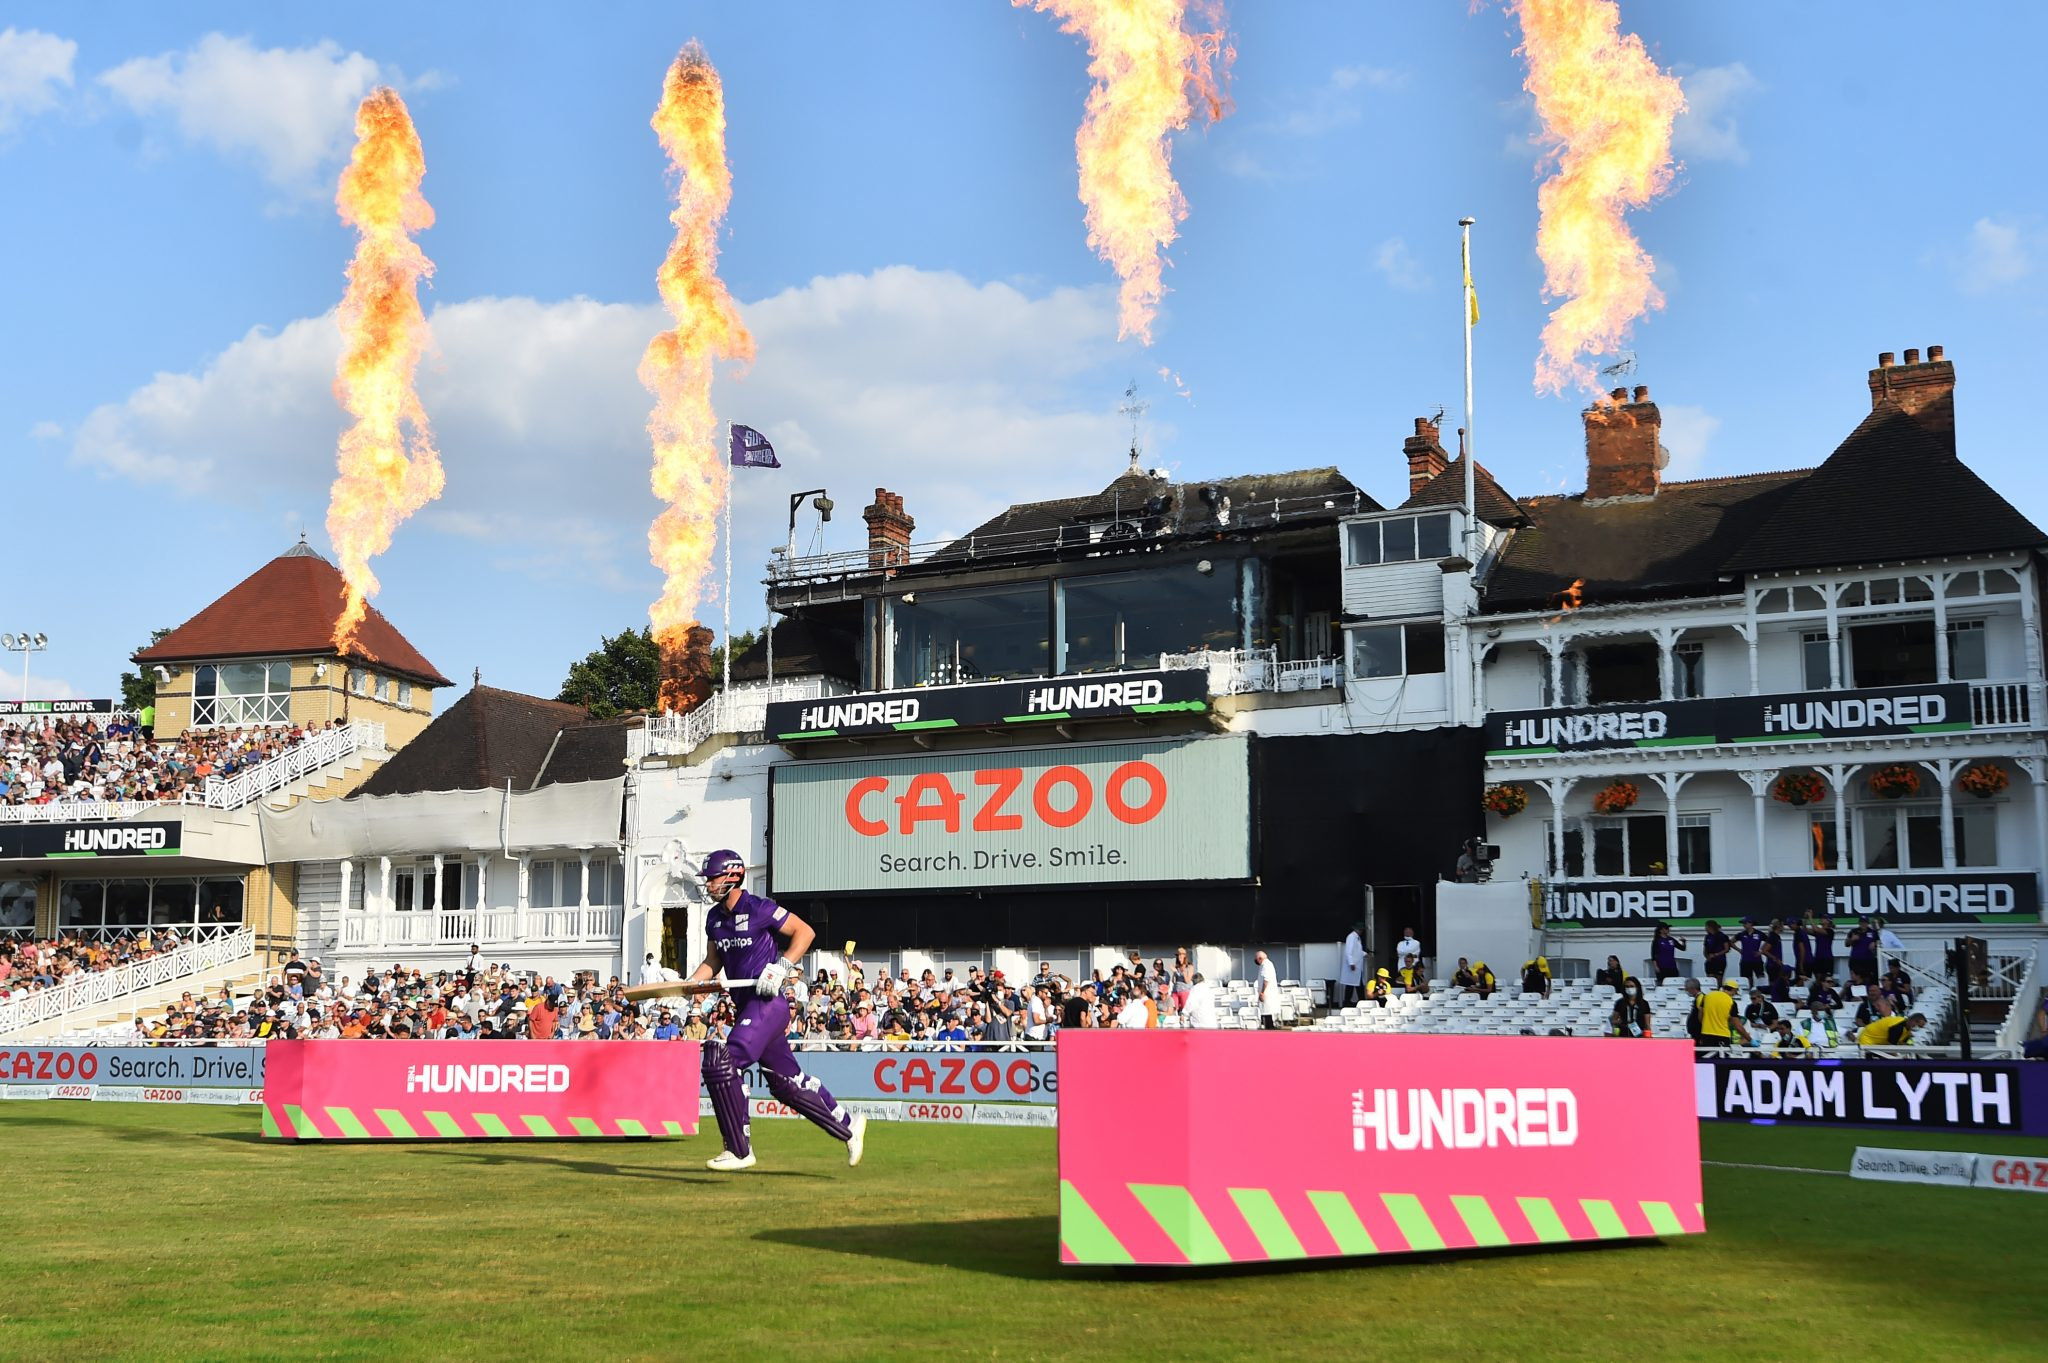 Cricketer runs onto pitch with Cazoo logo in the background.